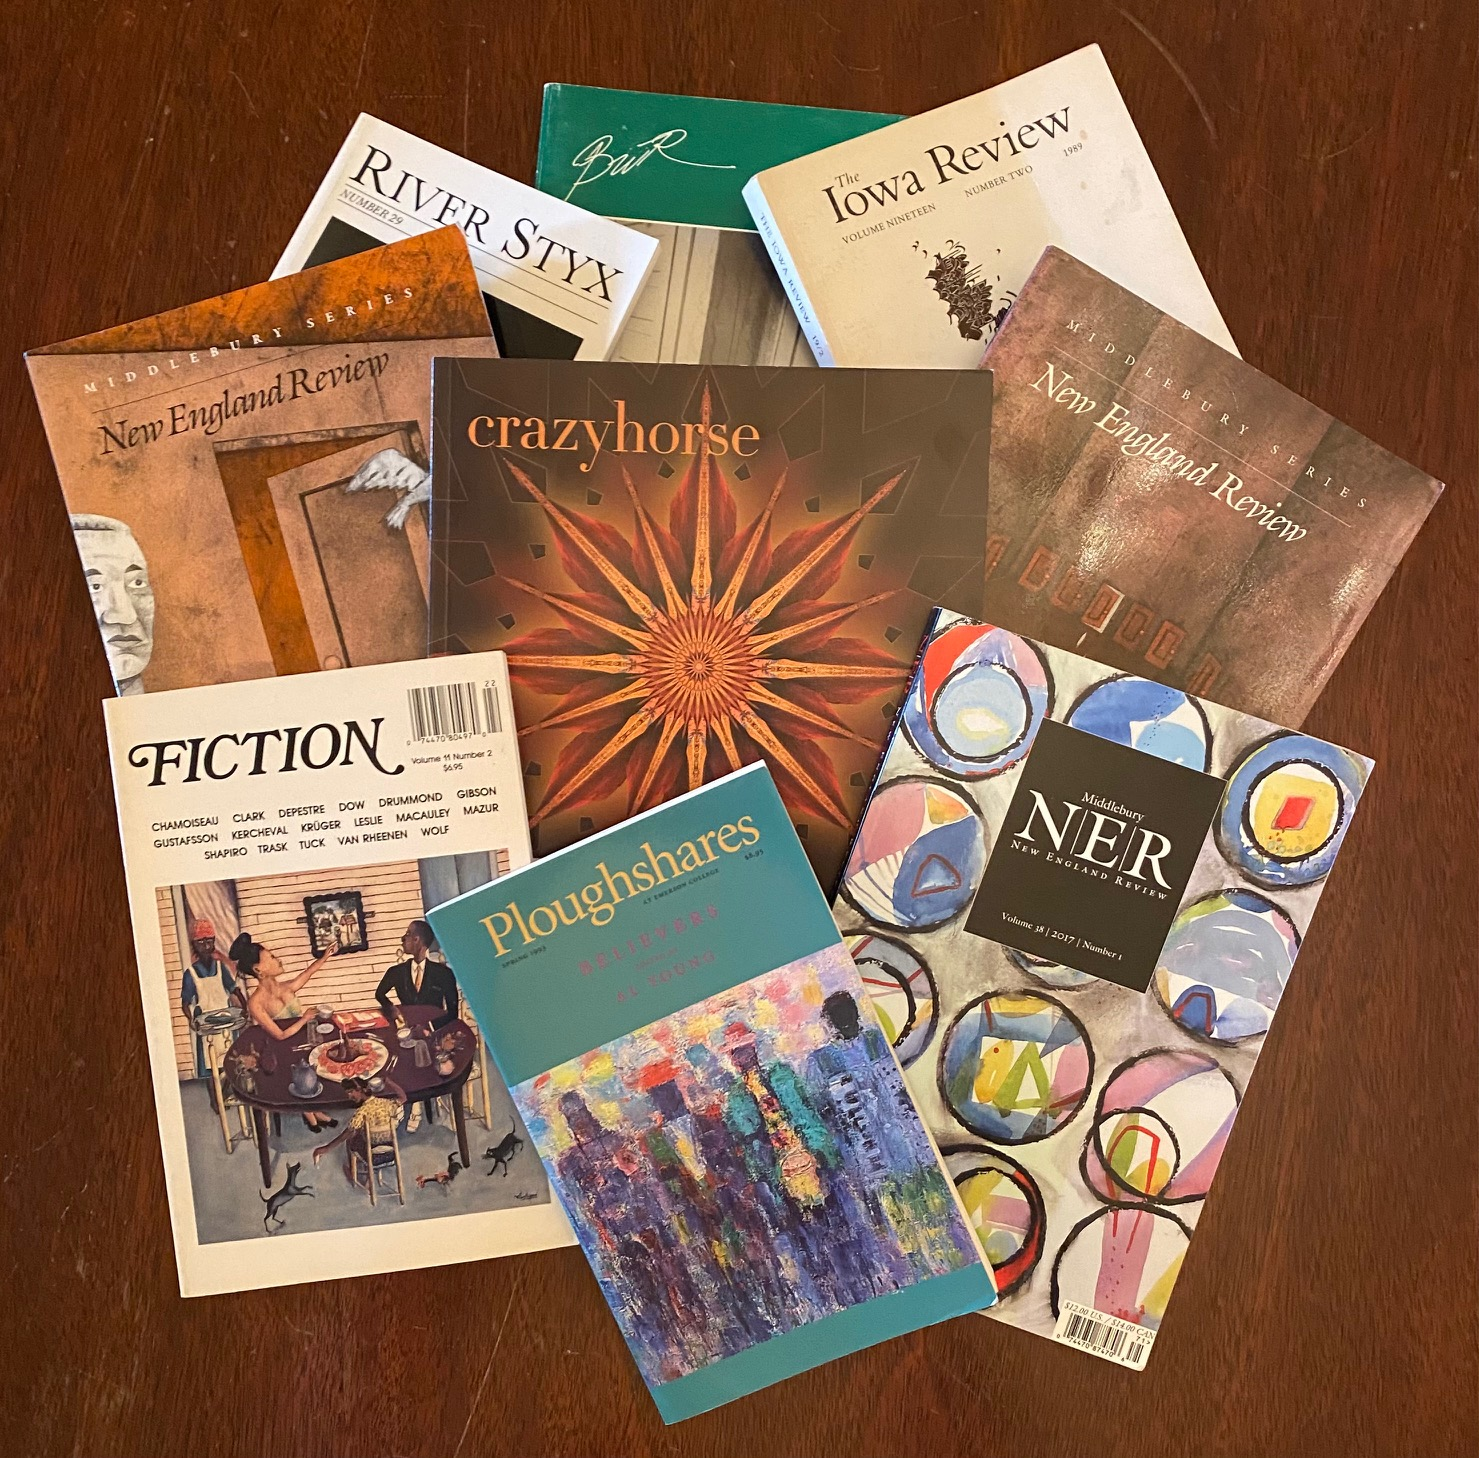 A fanned-out pile of literary magazines.